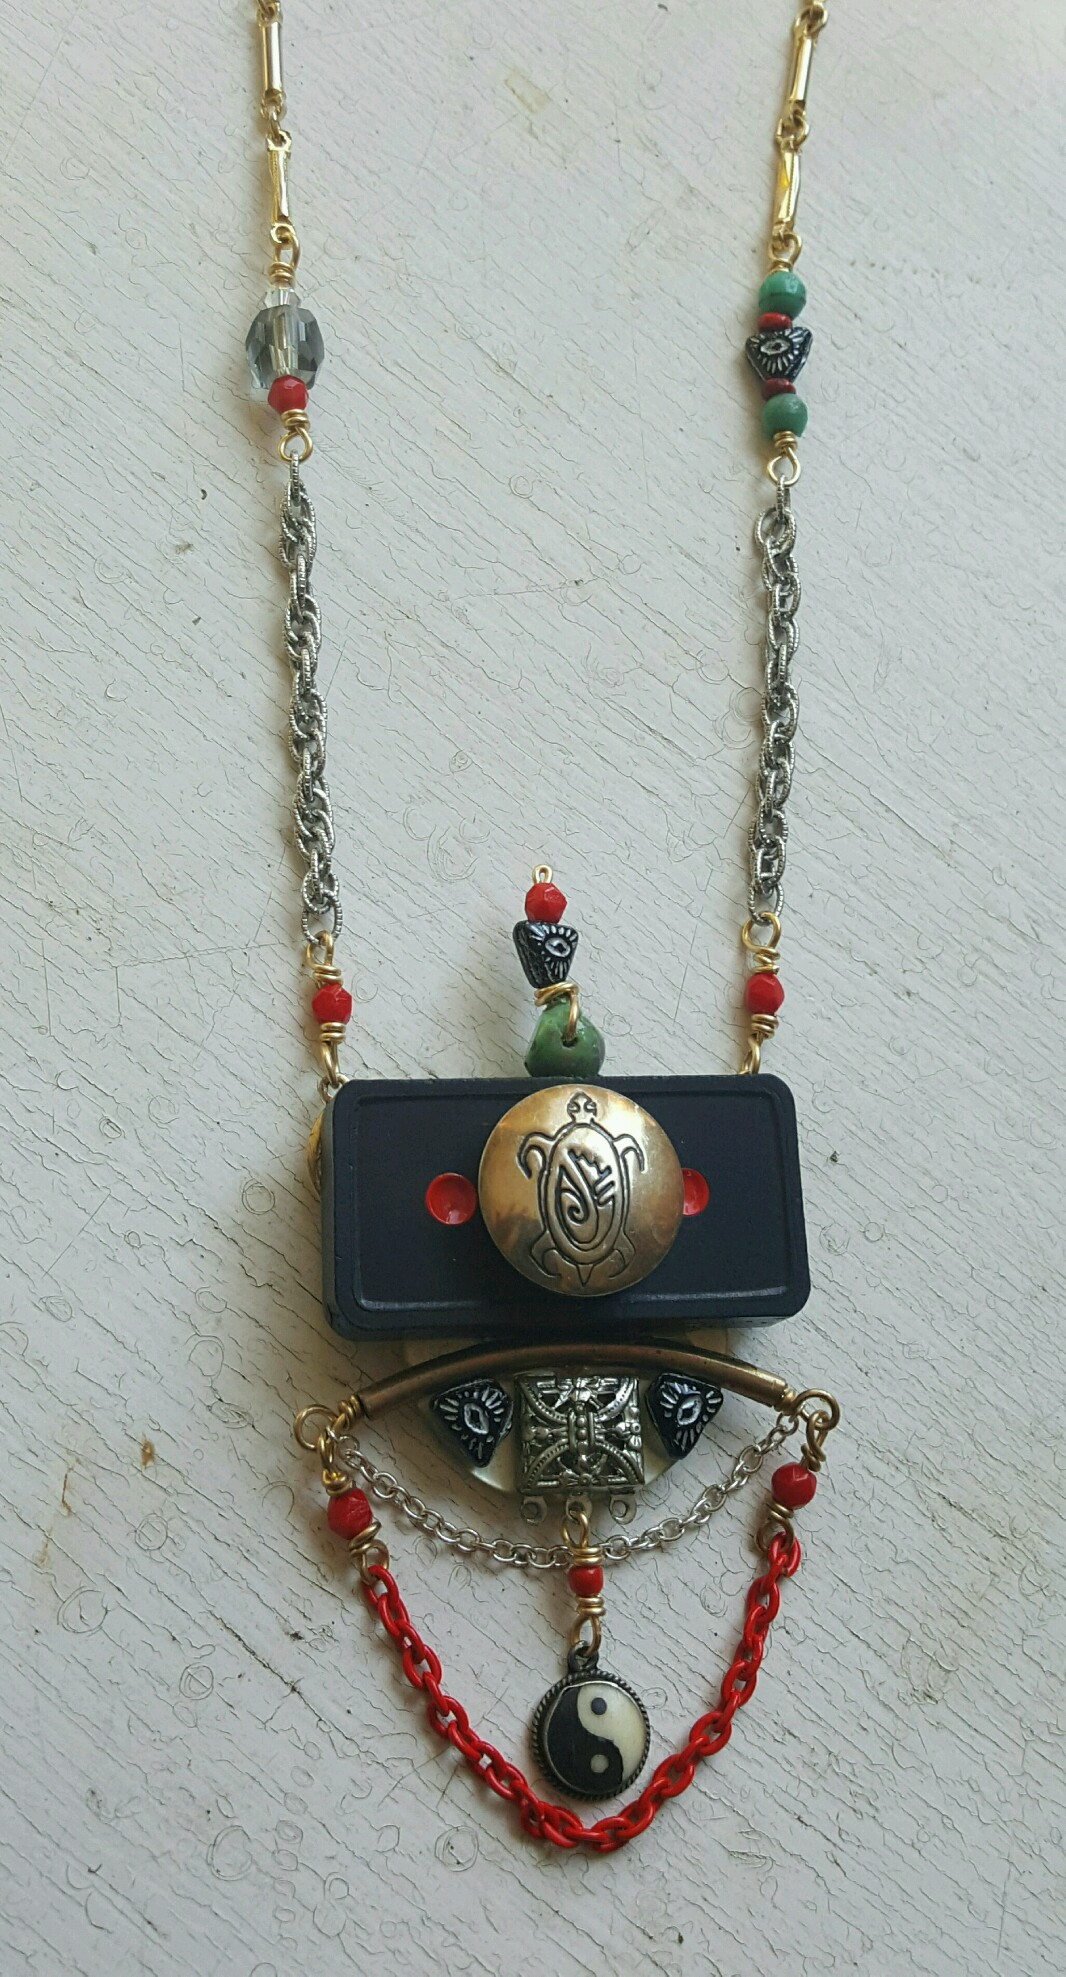 gorgeous statement necklace with yin yang symbol, by susan weeks